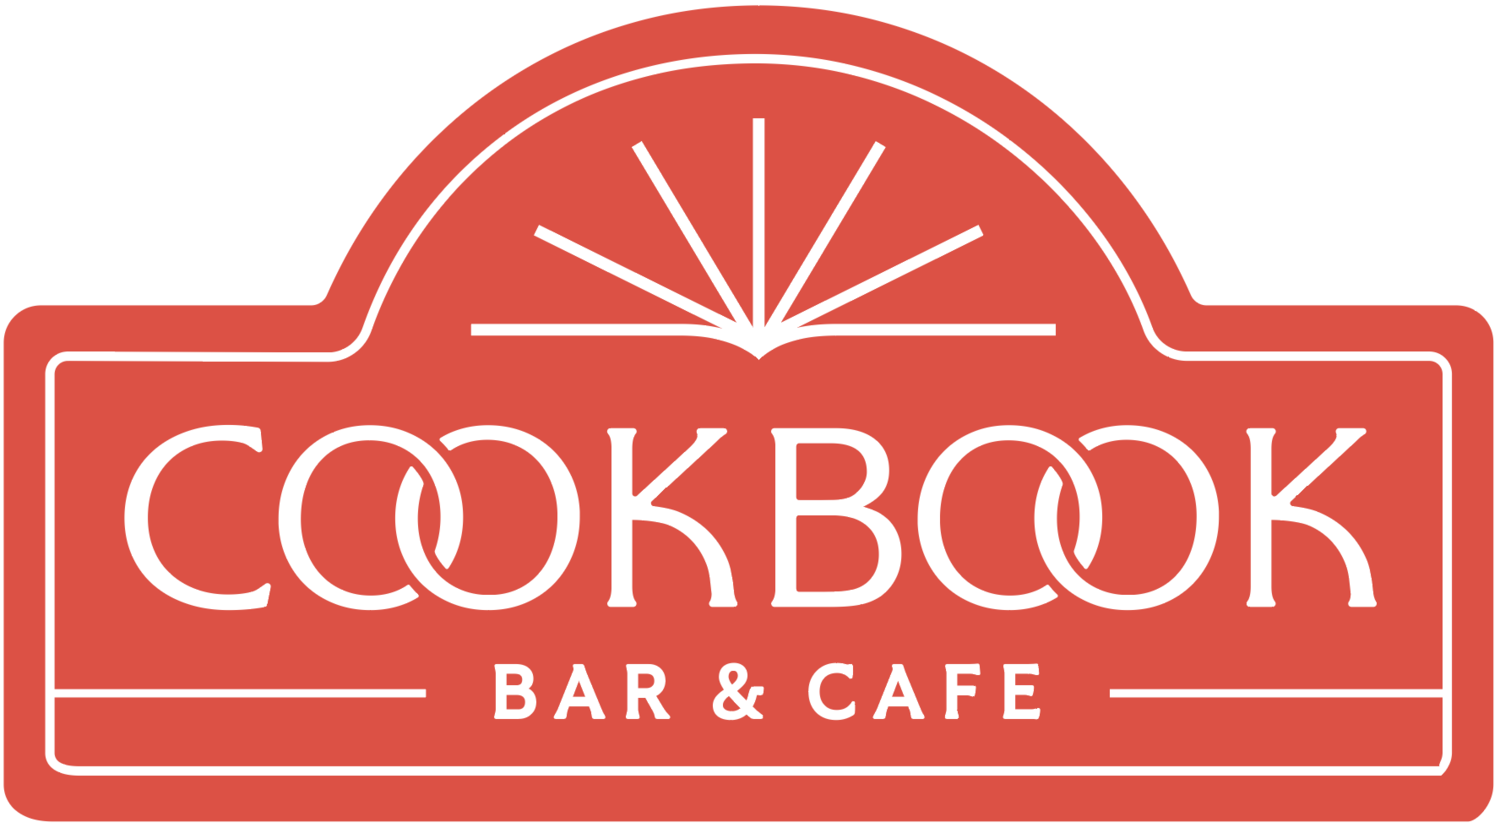 Cookbook Bar & Café — Austin, Texas